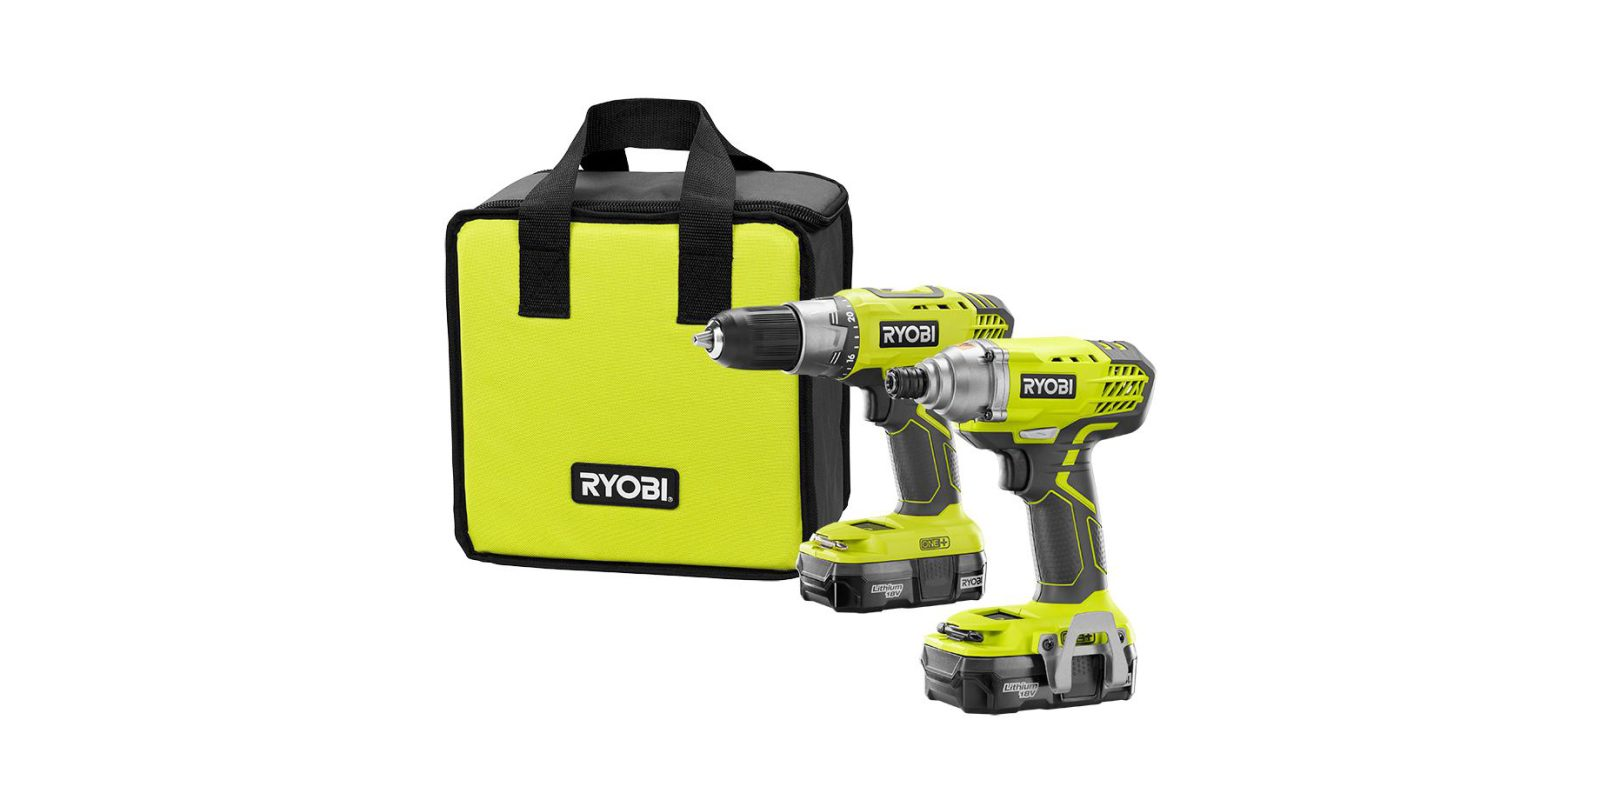 Warm weather calls for new tools, grab this Ryobi cordless combo kit at $99